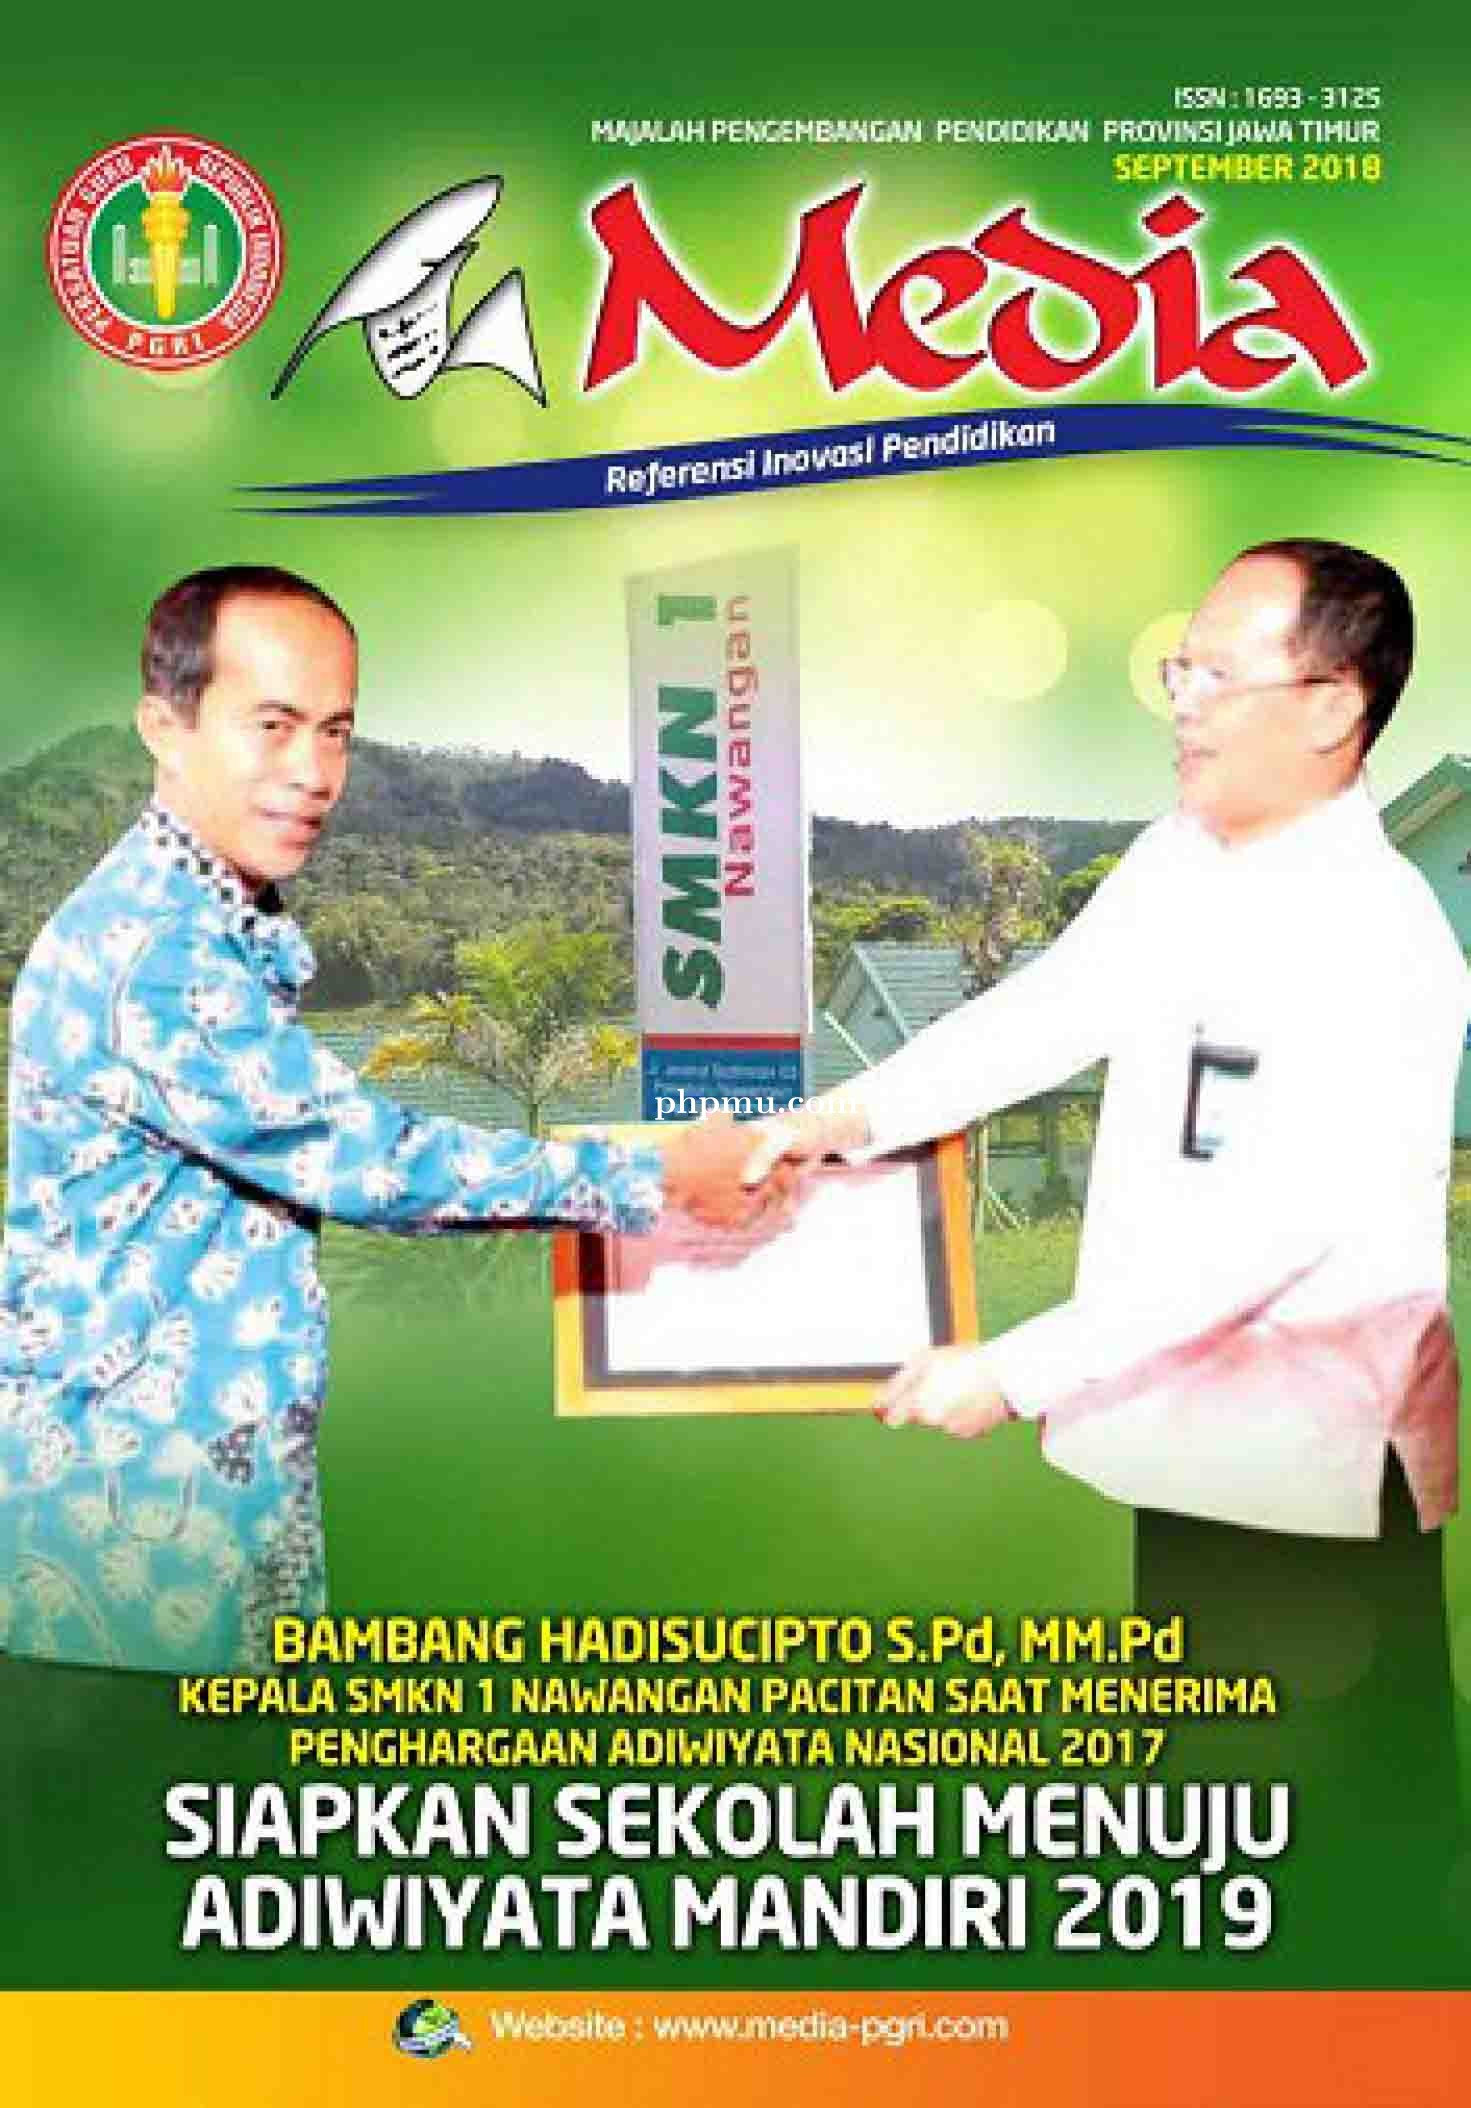 Majalah Media Bulan September 2018